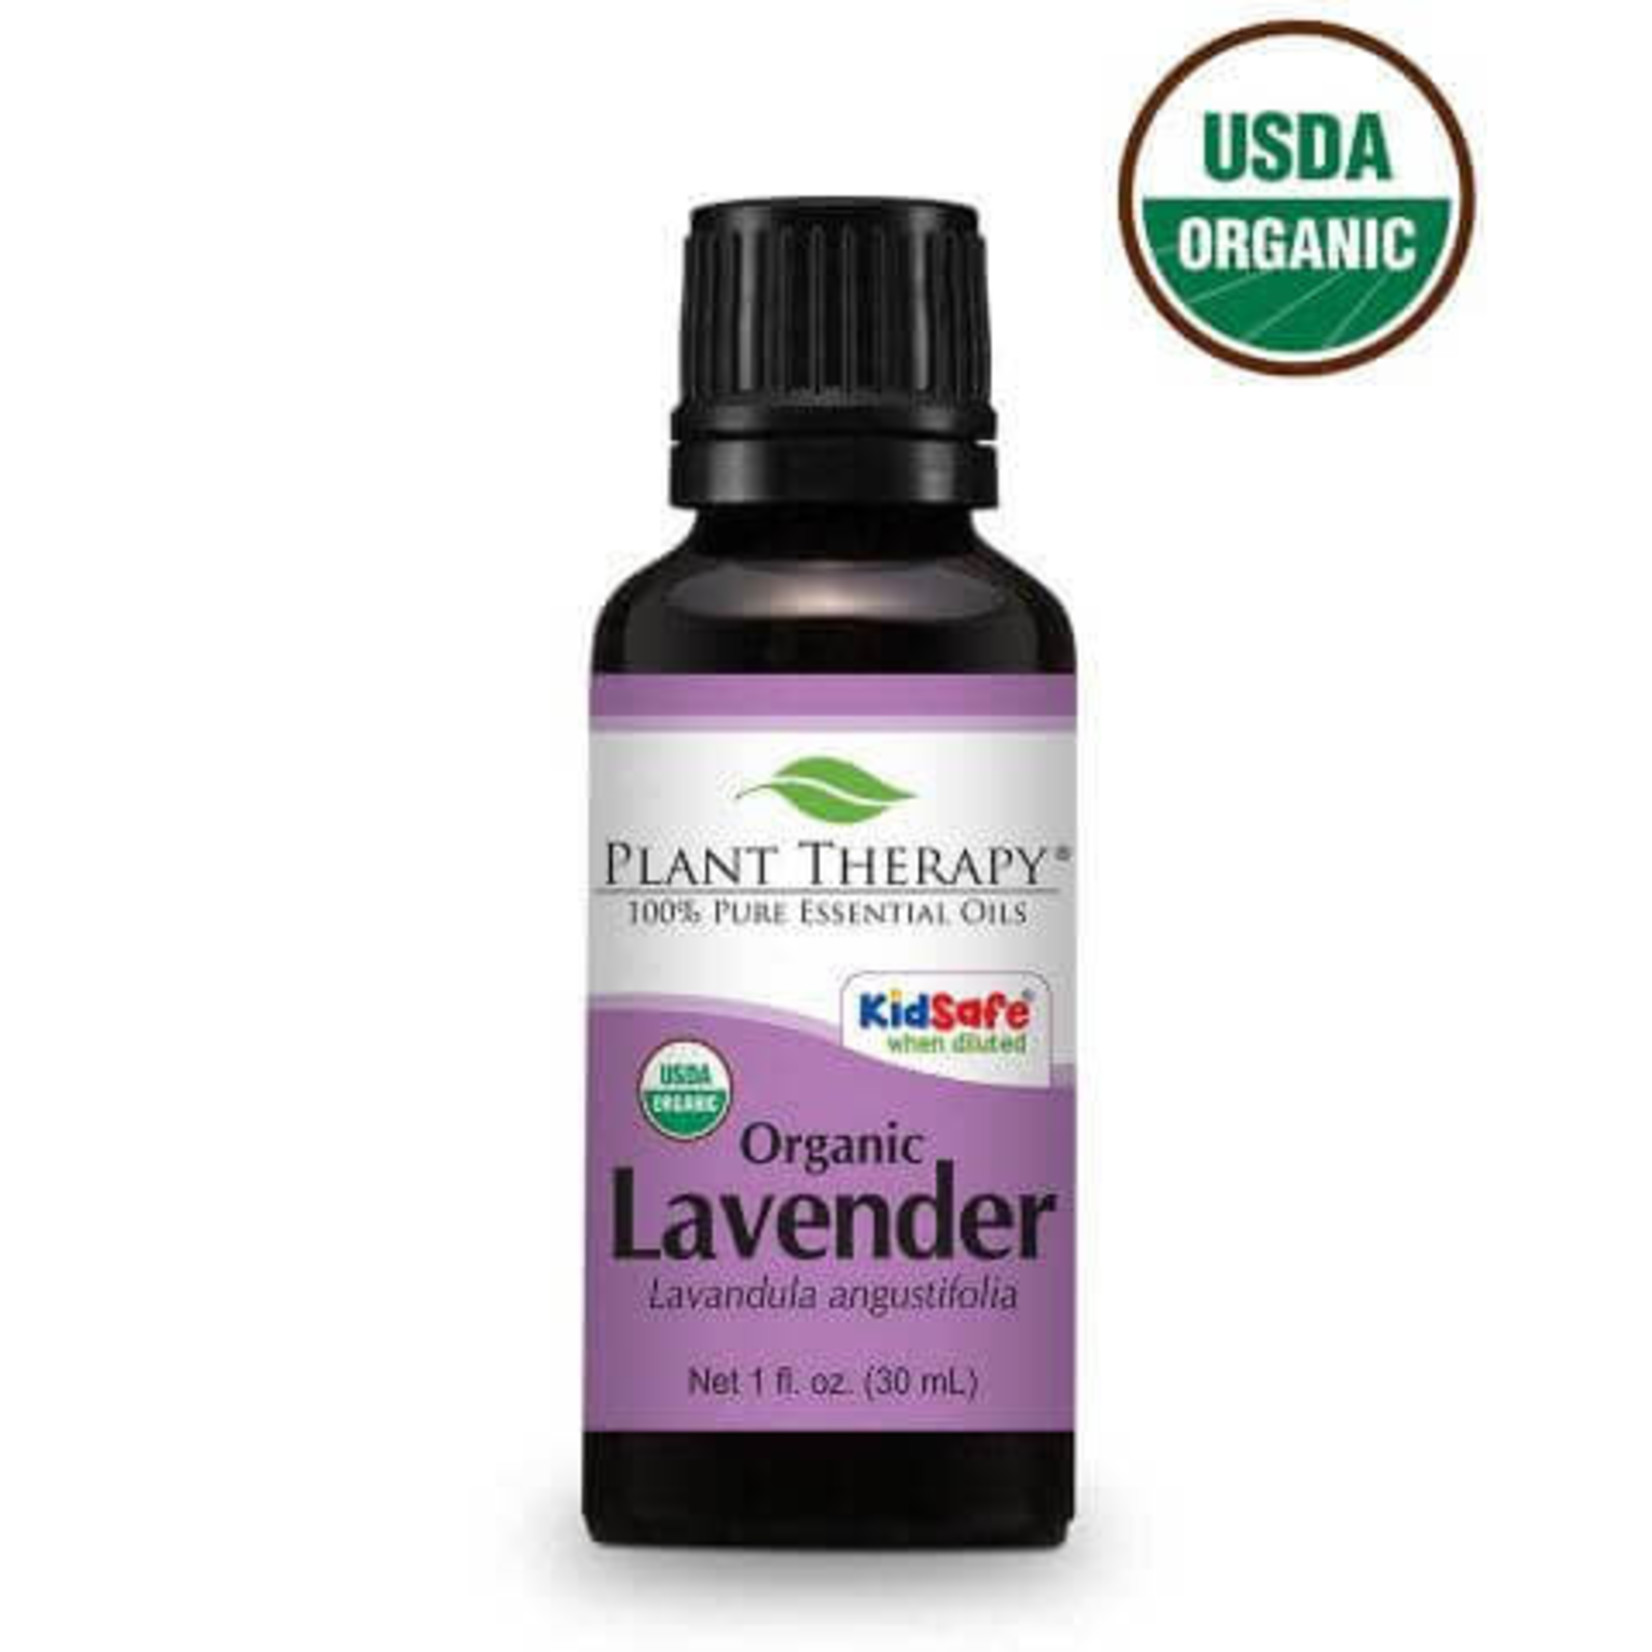 Plant Therapy PT Lavender Organic Essential Oil